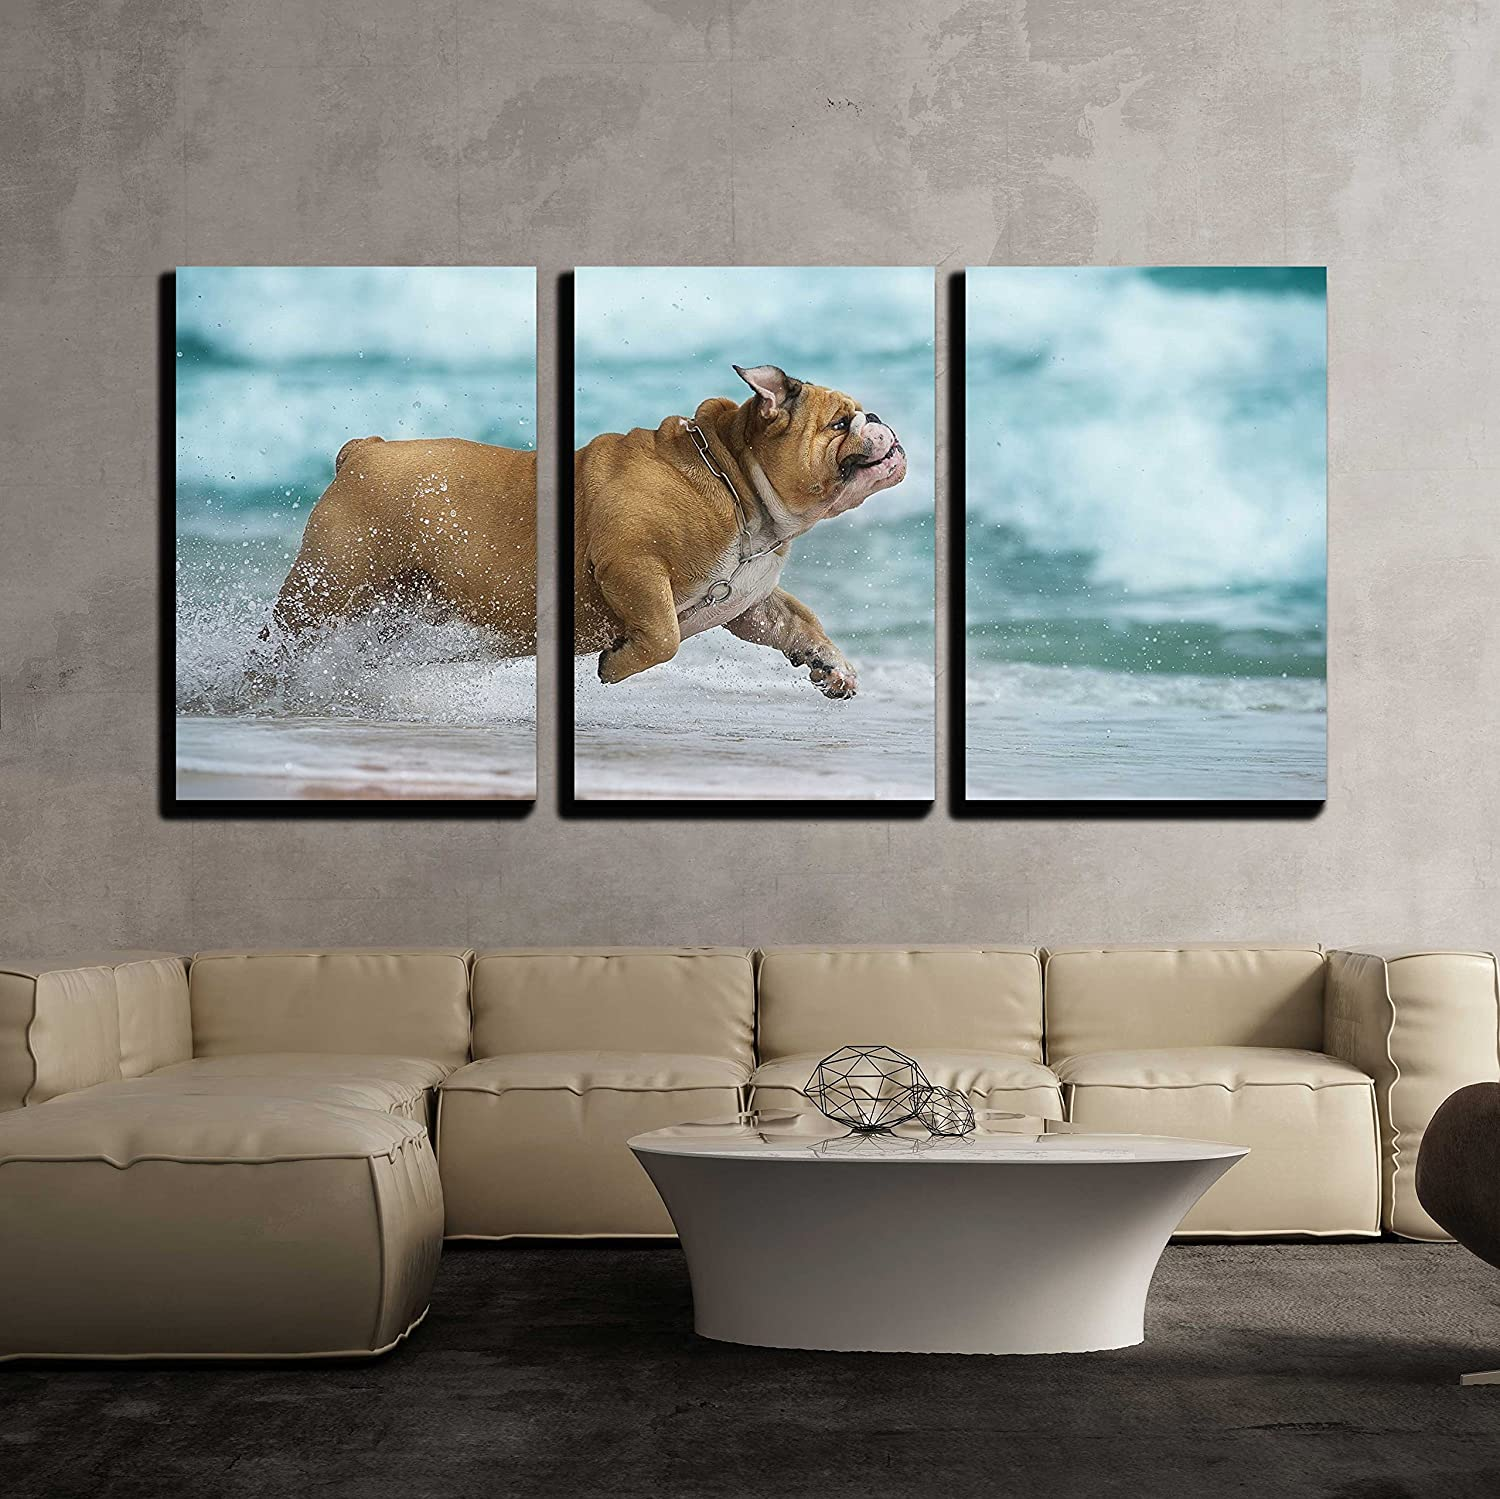 "wall26 - 3 Piece Canvas Wall Art - Happy Dog Bulldog Running at The Sea - Modern Home Decor Stretched and Framed Ready to Hang - 16""x24""x3 Panels"